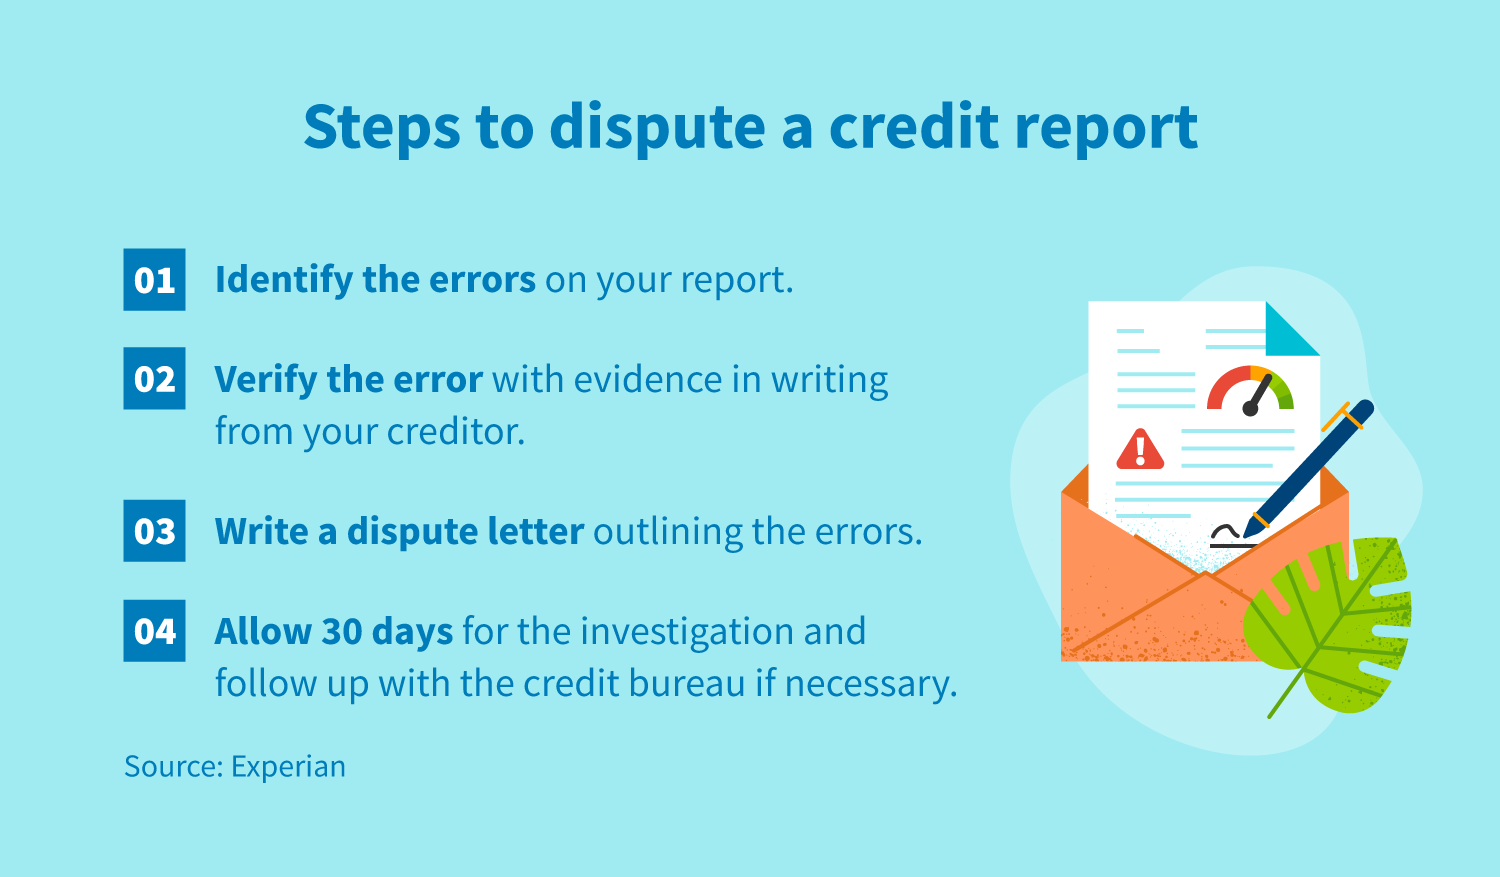 steps to dispute a credit report - 1) identify the errors, 2) verify the error, 3) write a dispute letter, 4) allow 30 days, 5) follow up